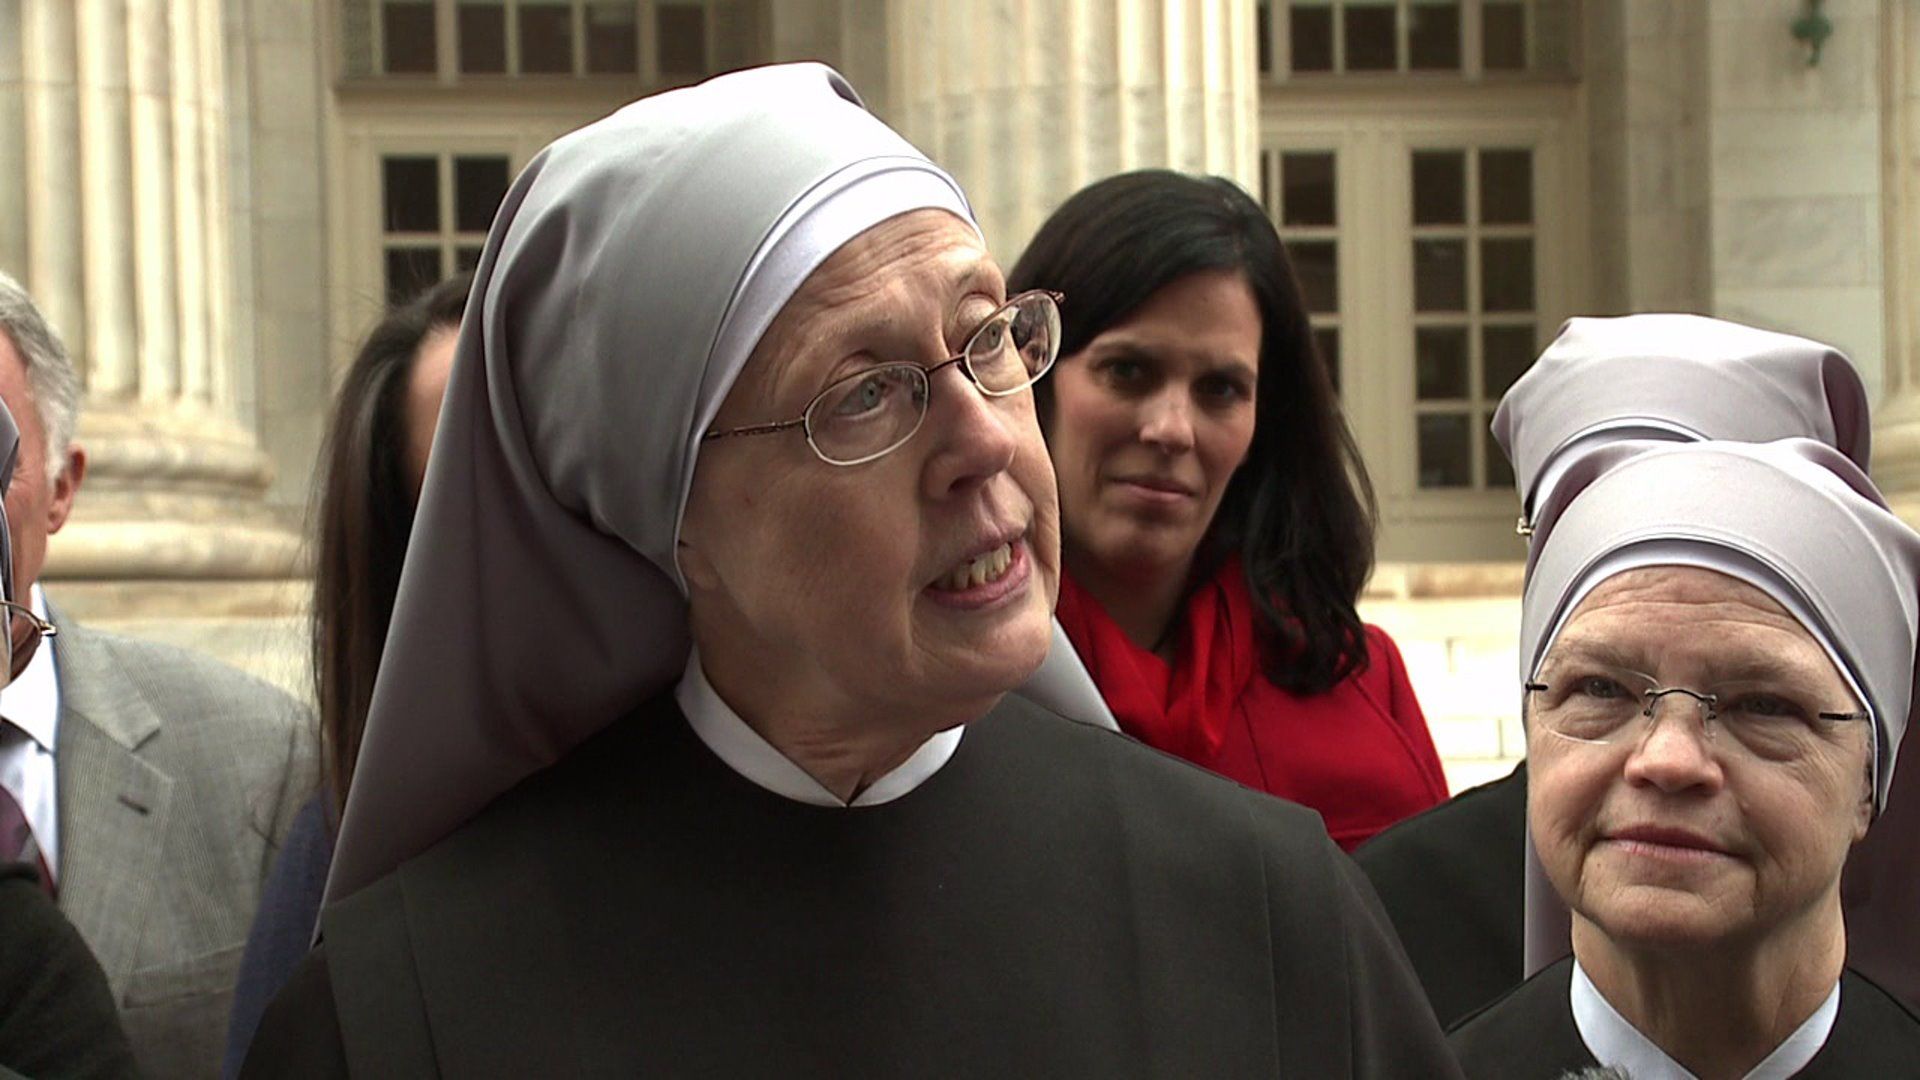 Nuns from the Little Sisters of the Poor in Denver